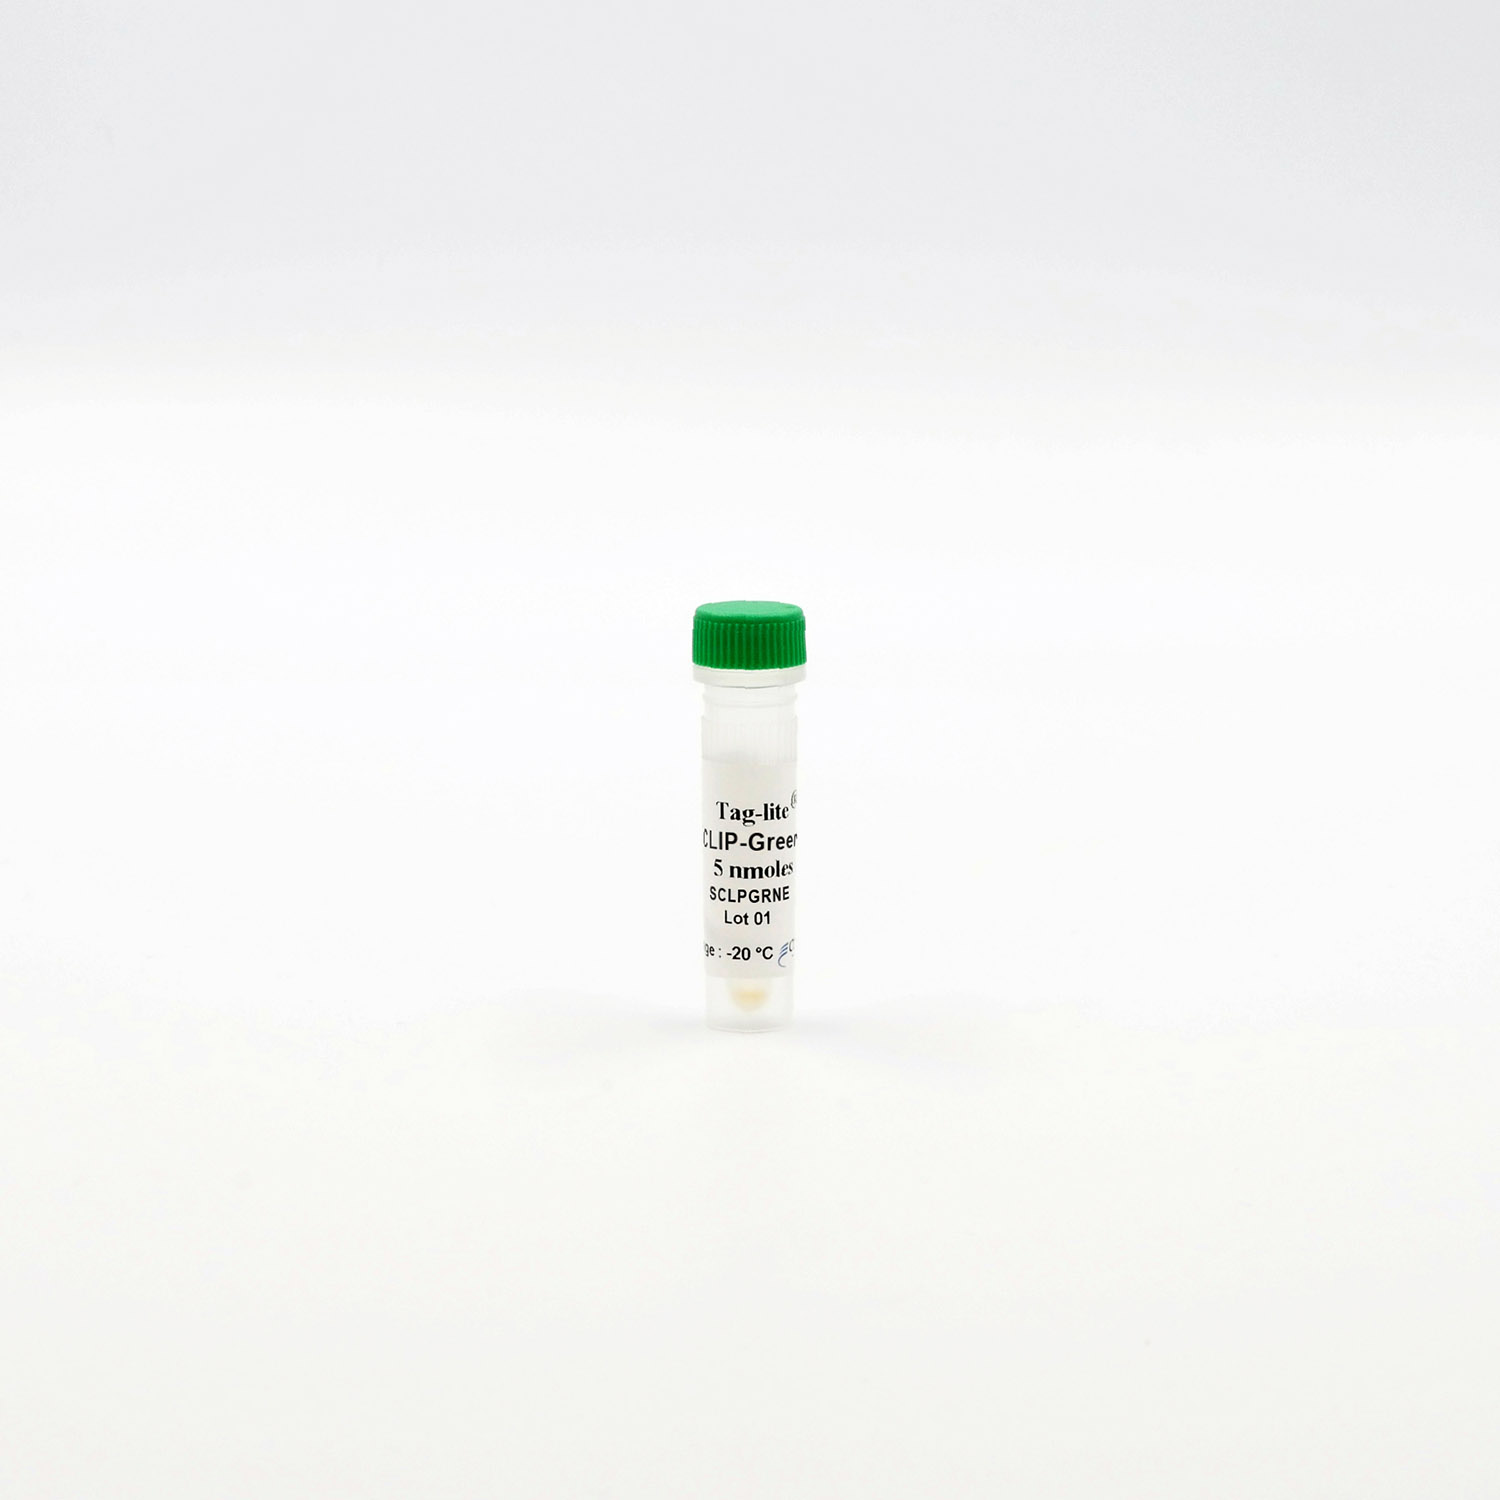 Photography of CLIP-Green vial